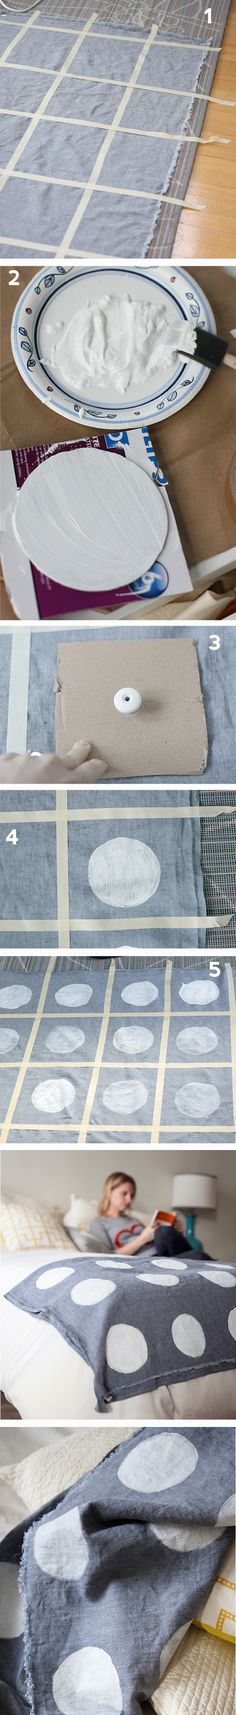 Hand stamped polka dot coverlet DIY.  All you need is linen, white fabric paint, paint or foam brush, scrap cardboard or styrofoam brush, masking tape, and time!  Love, love, LOVE polka dots!!